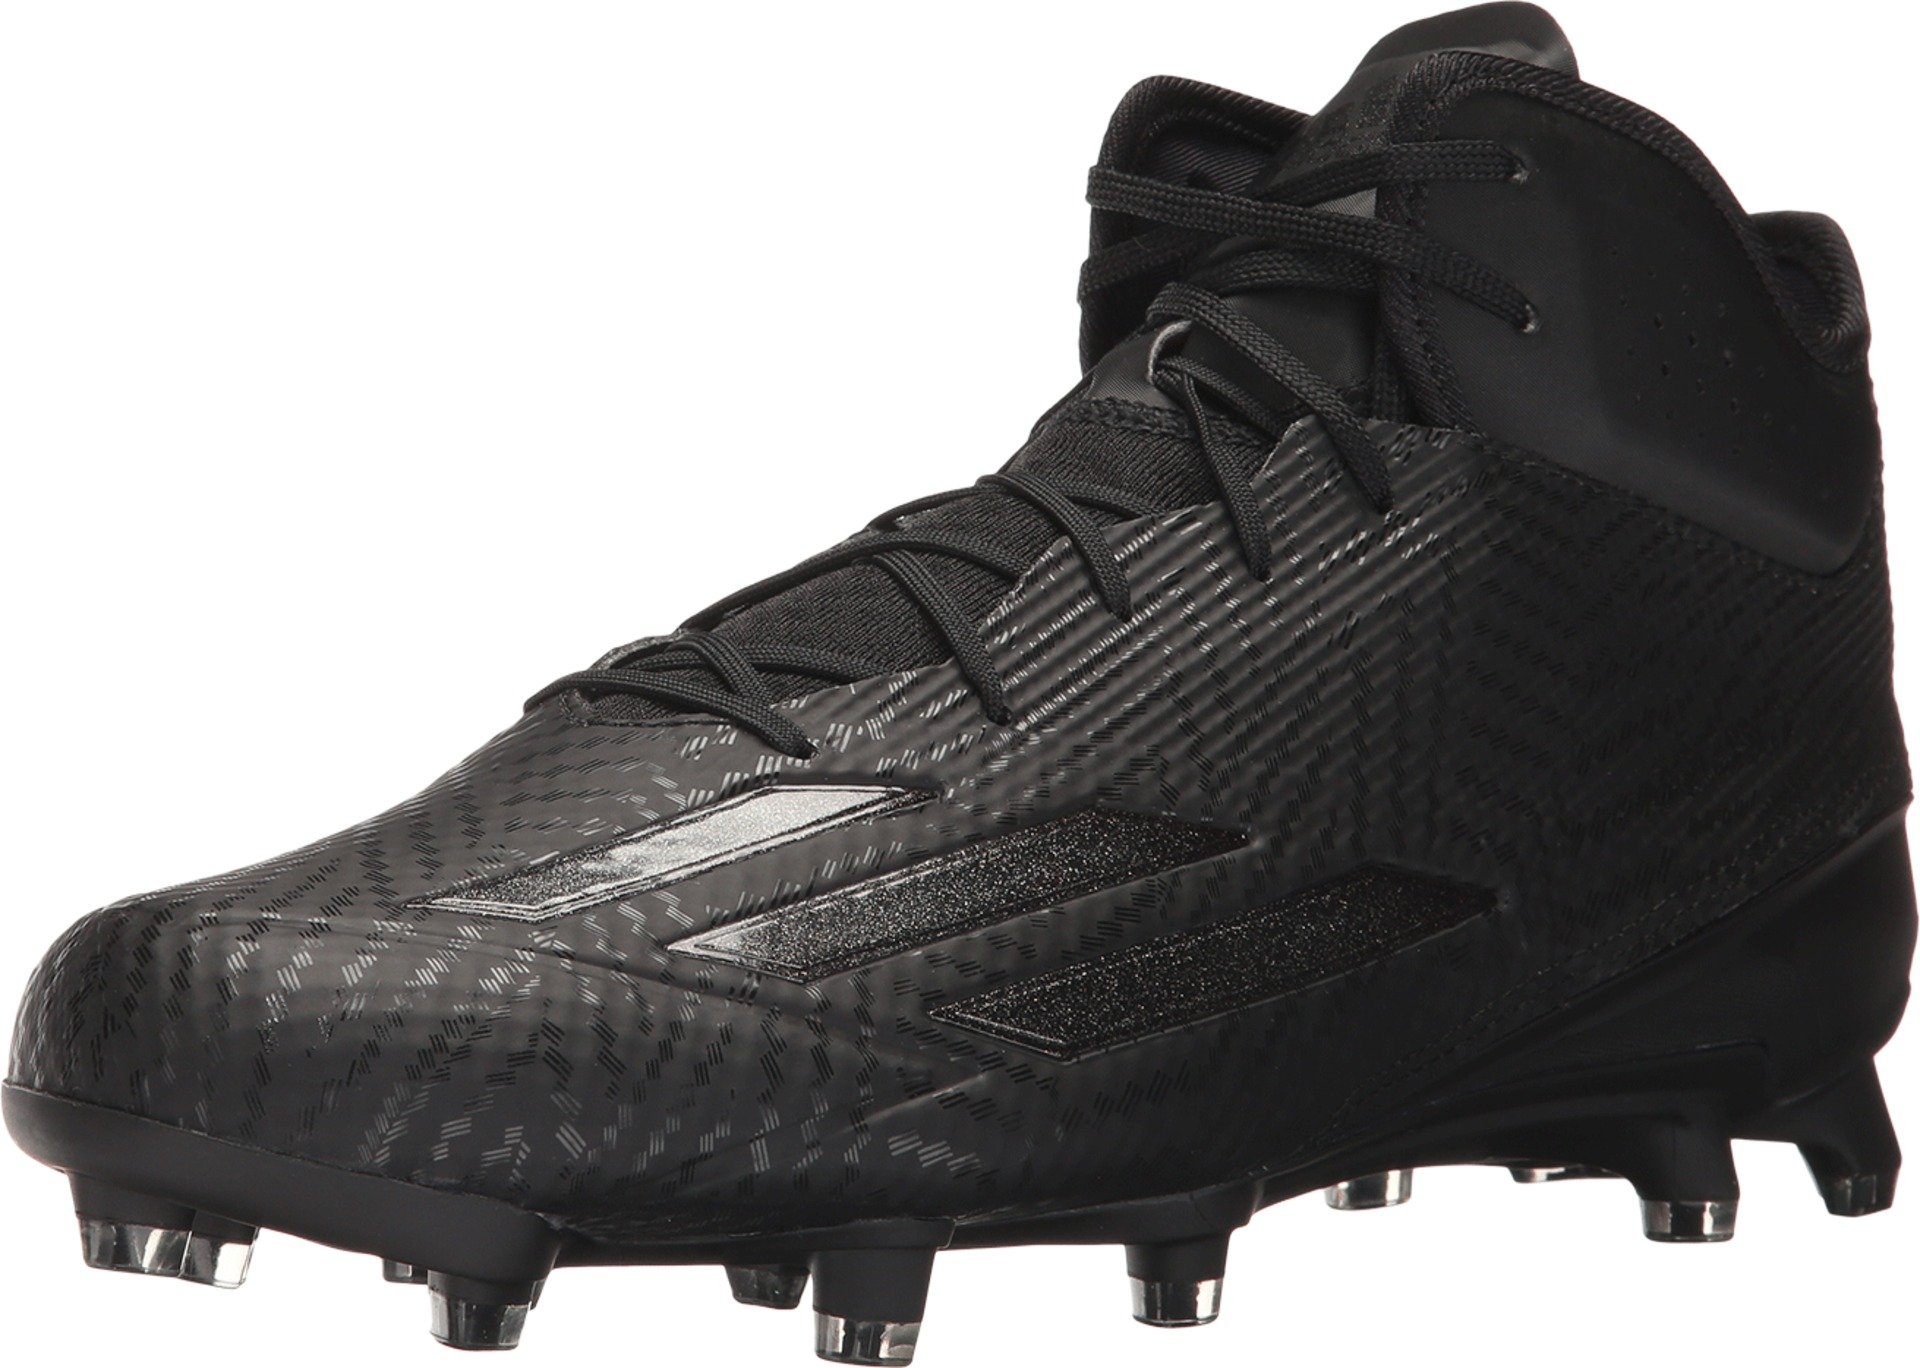 adidas Adizero 5-Star 5.0 Mid Mens Football Cleat 12 Black by adidas